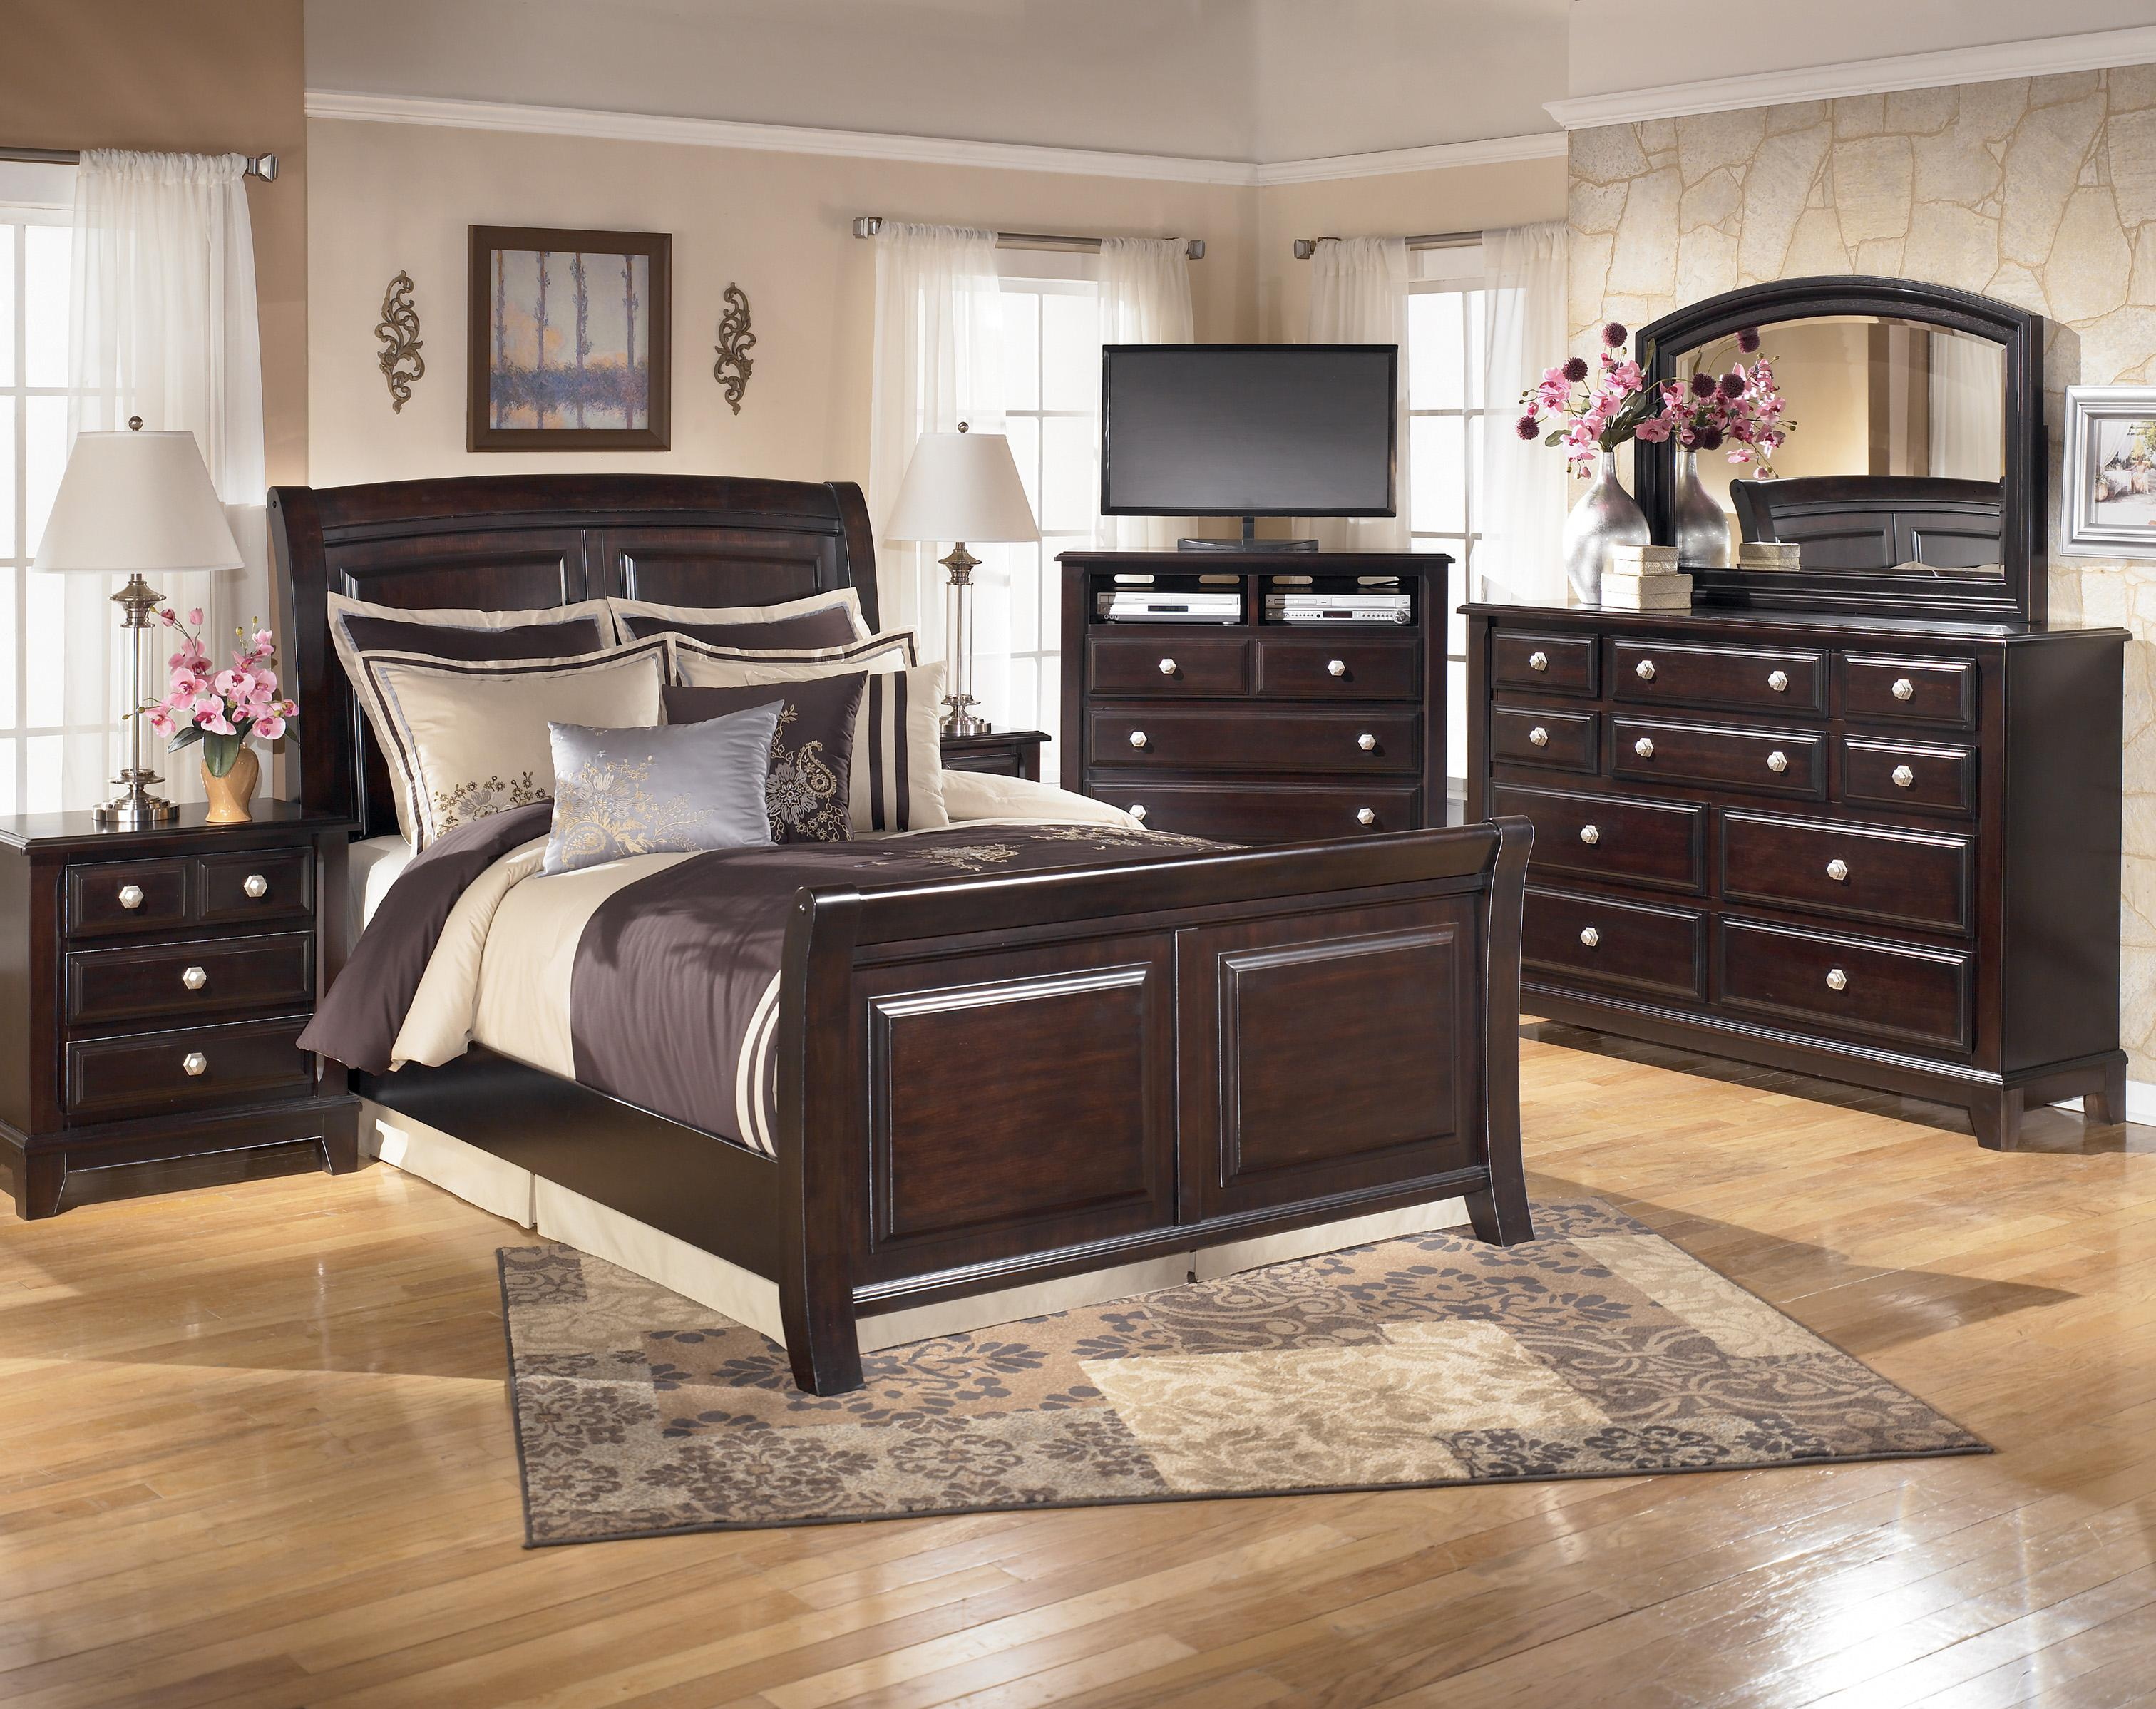 California King Sleigh Bed By Signature Design By Ashley Wolf And Gardiner Wolf Furniture